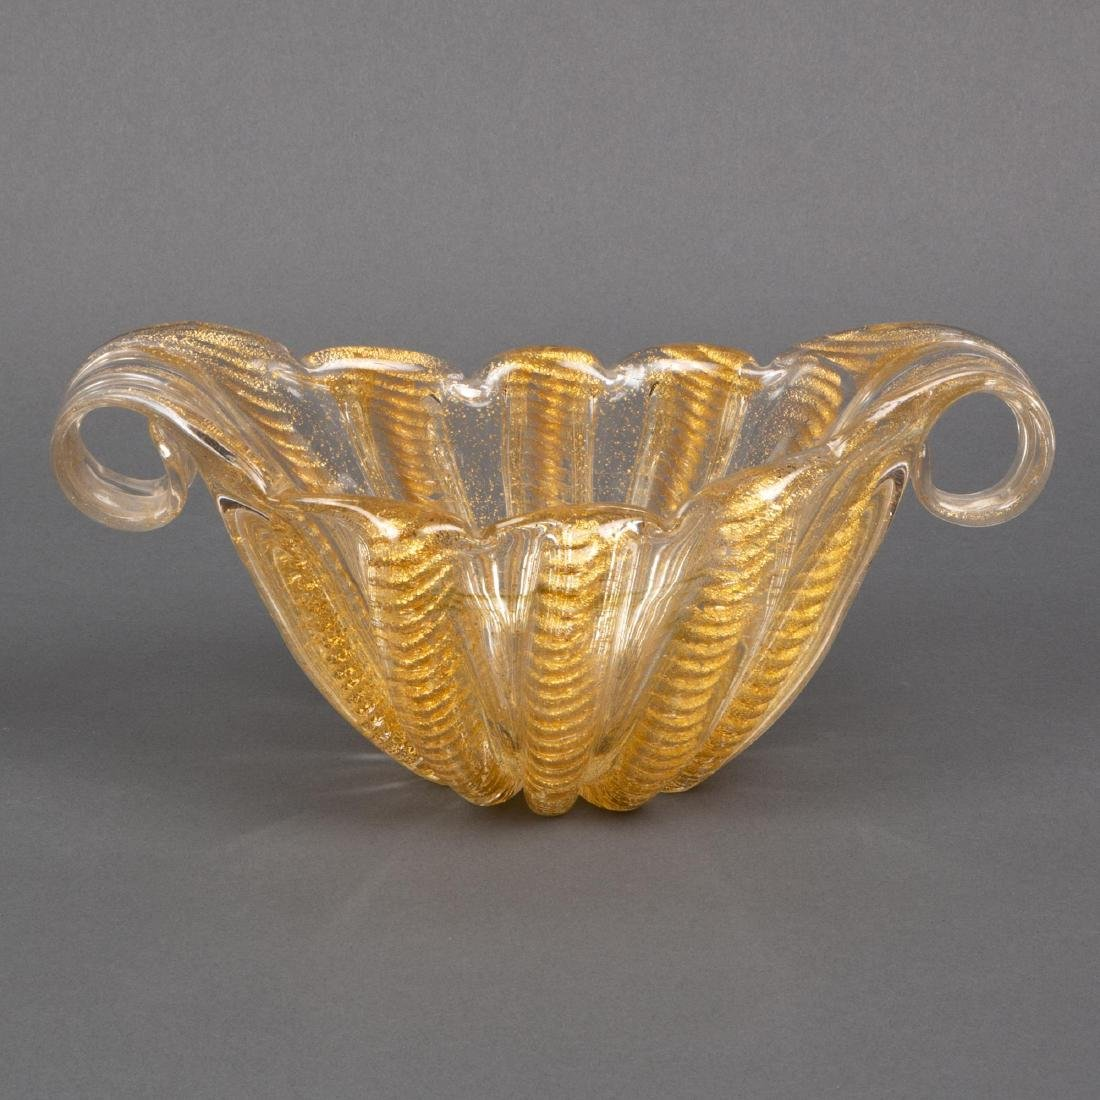 Barovier & Toso Murano Gold-Fleck Art Glass Bowl